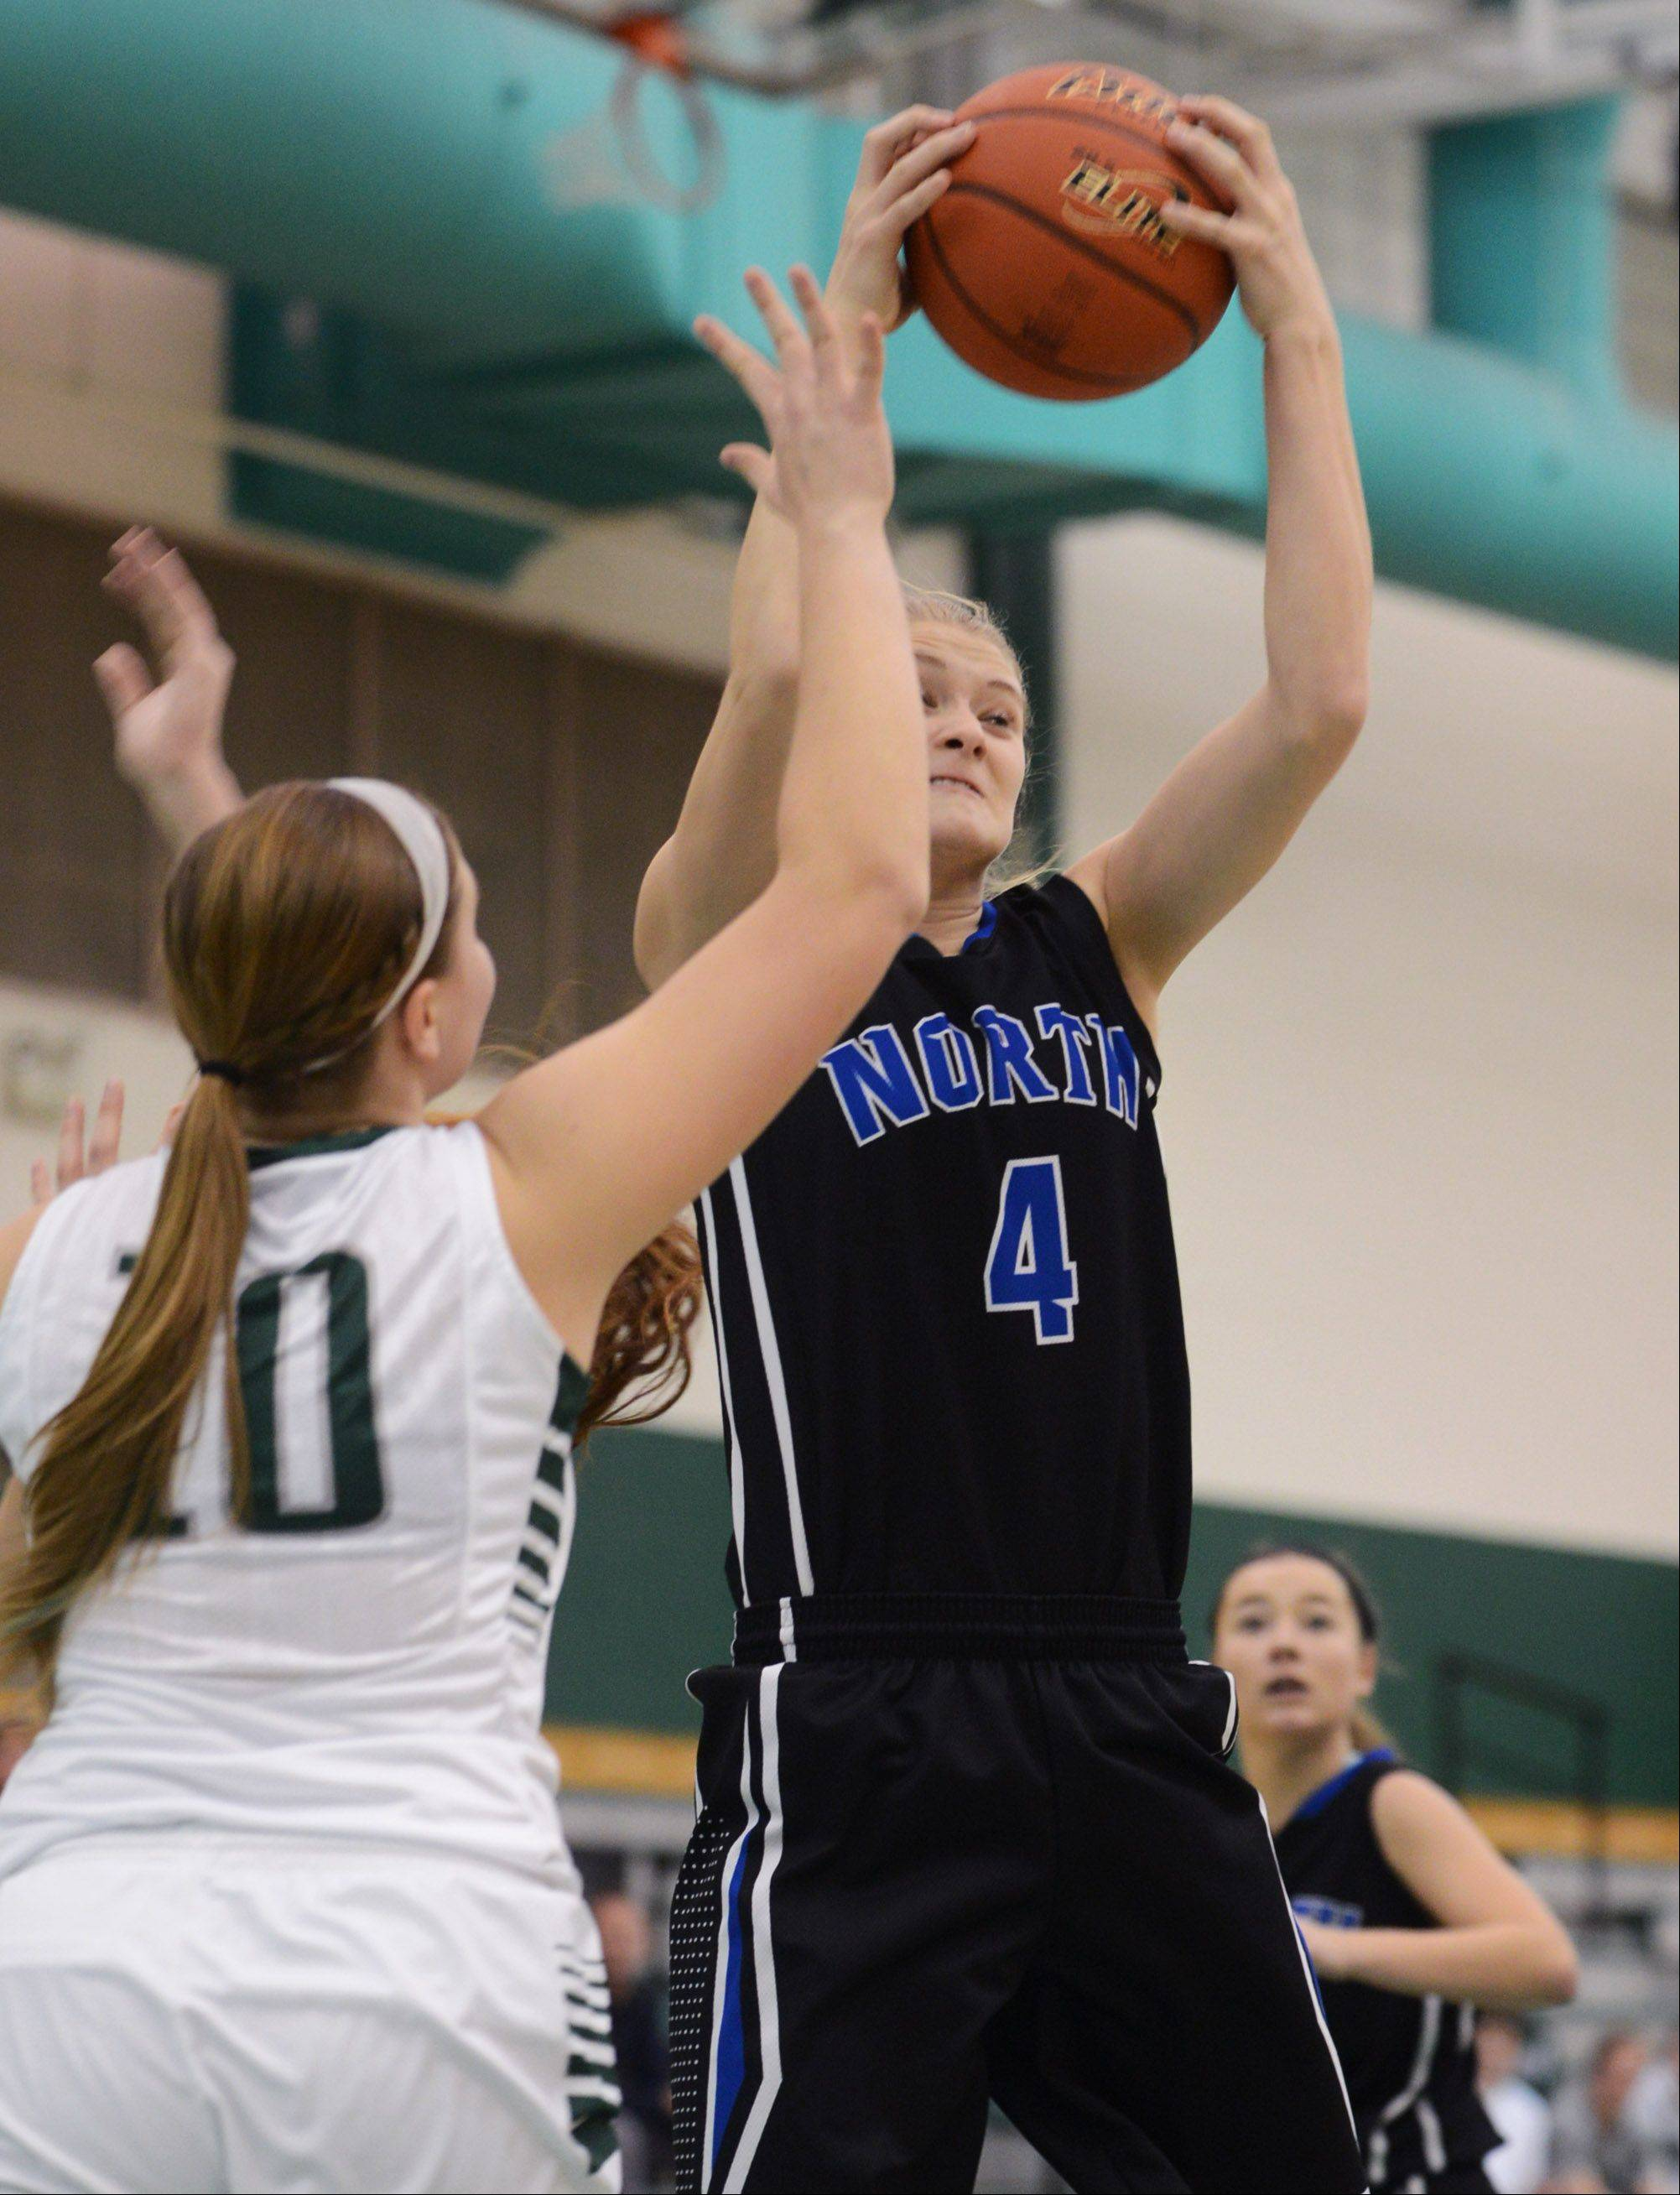 St. Charles North's Morgan Rosencrants (4) pulls down a rebound over Grayslake Central's Maddy Miller on Thursday night in Grayslake.